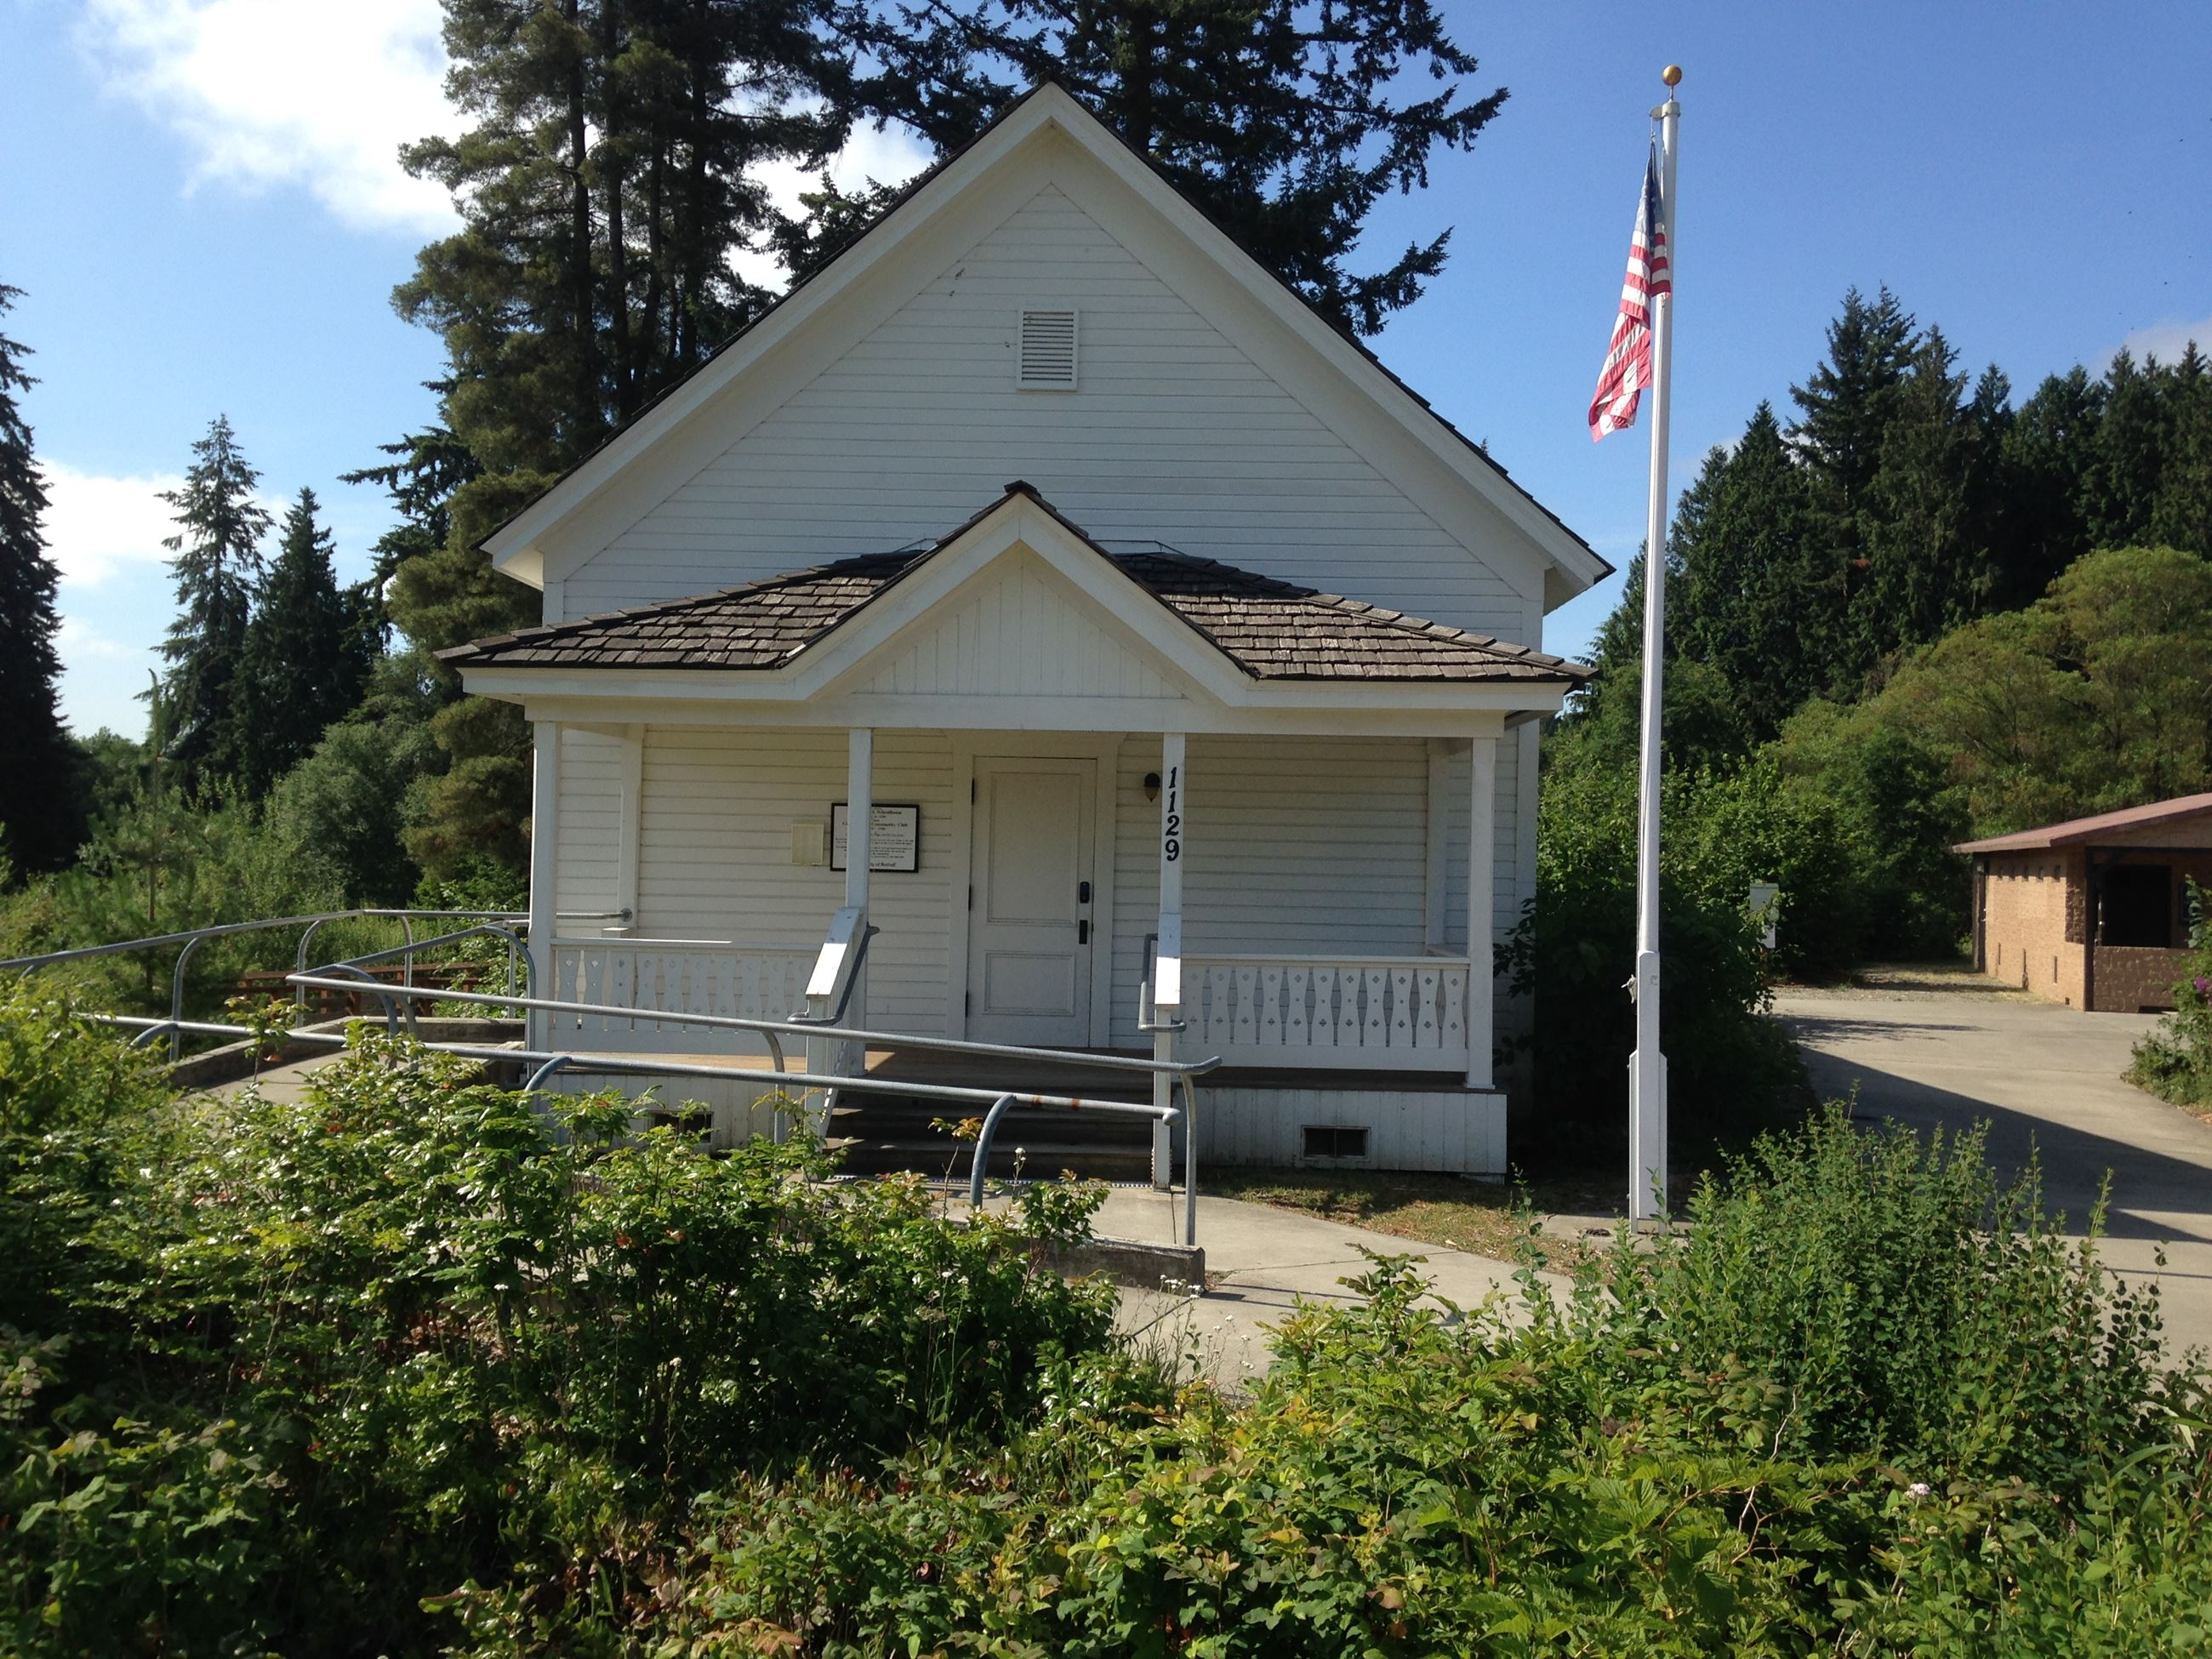 North Creek Schoolhouse